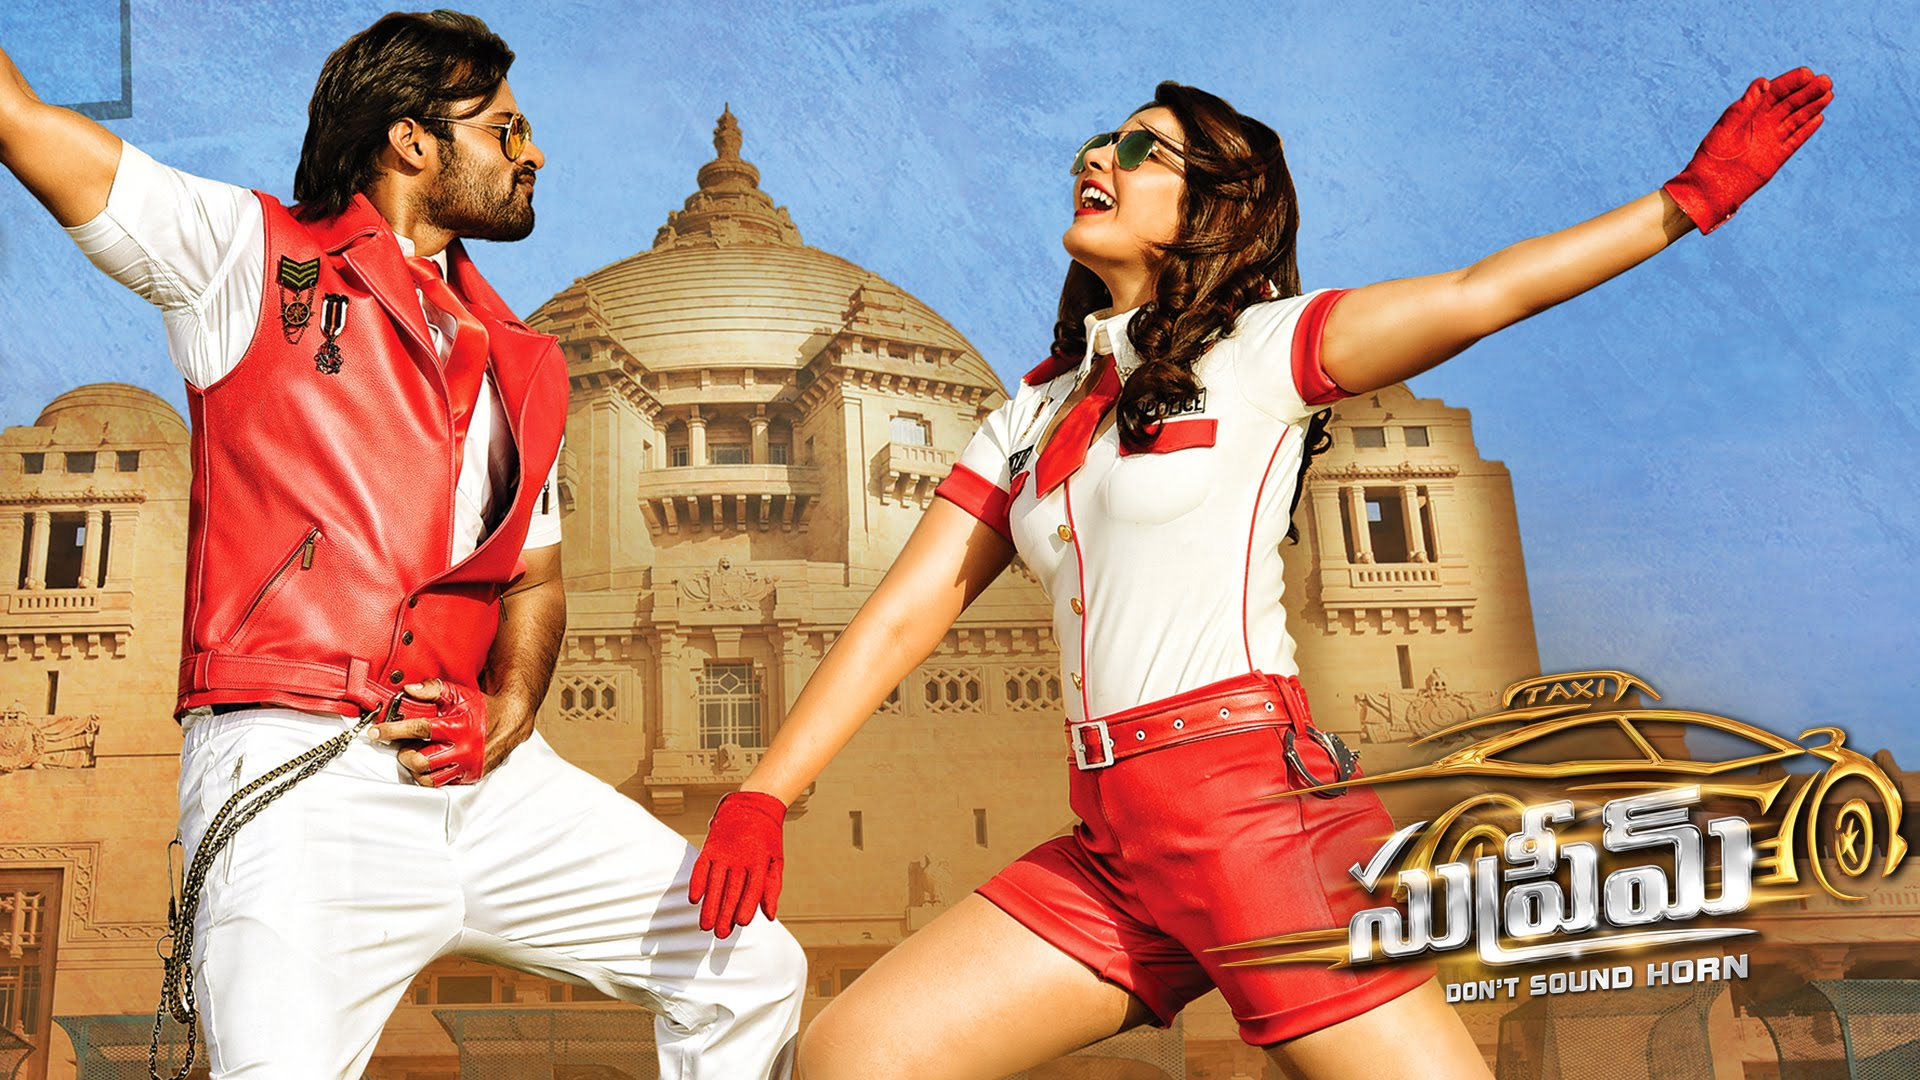 Supreme Video Song Promos Andhrawatch